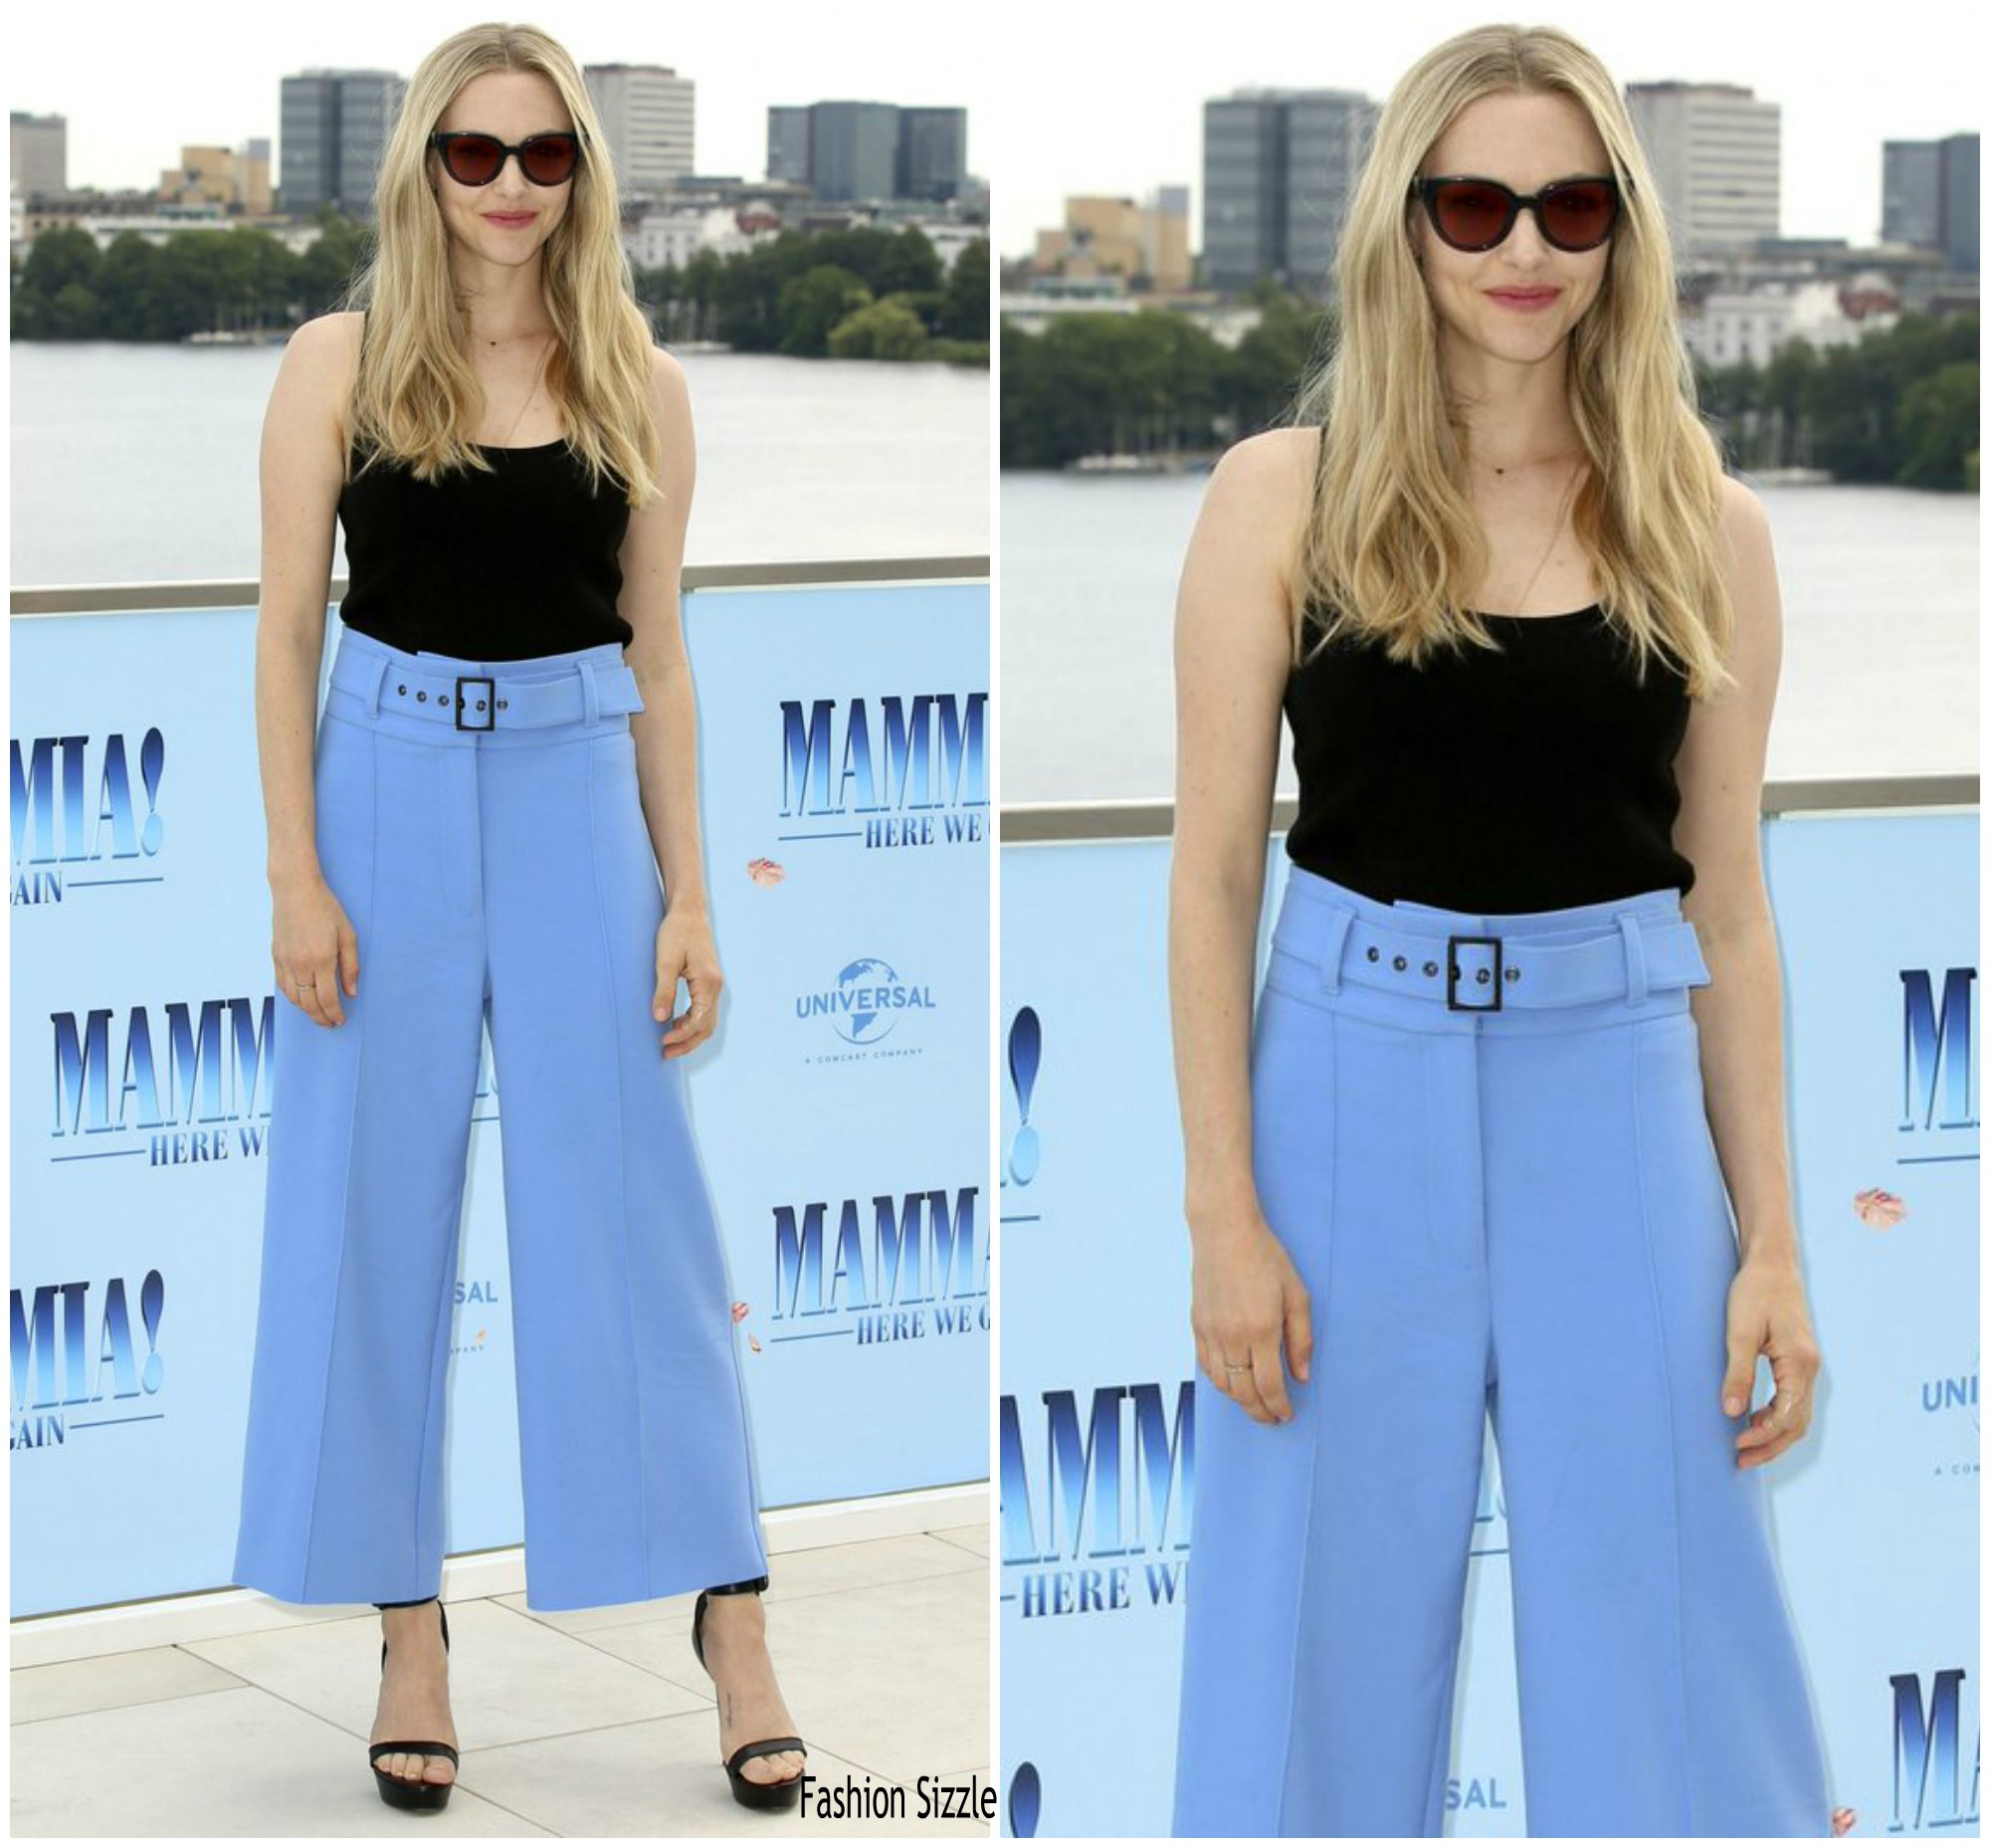 amanda-seyfried-in-veronica-beard-mamma-mia-here-we-go-again-hamburg-photocall